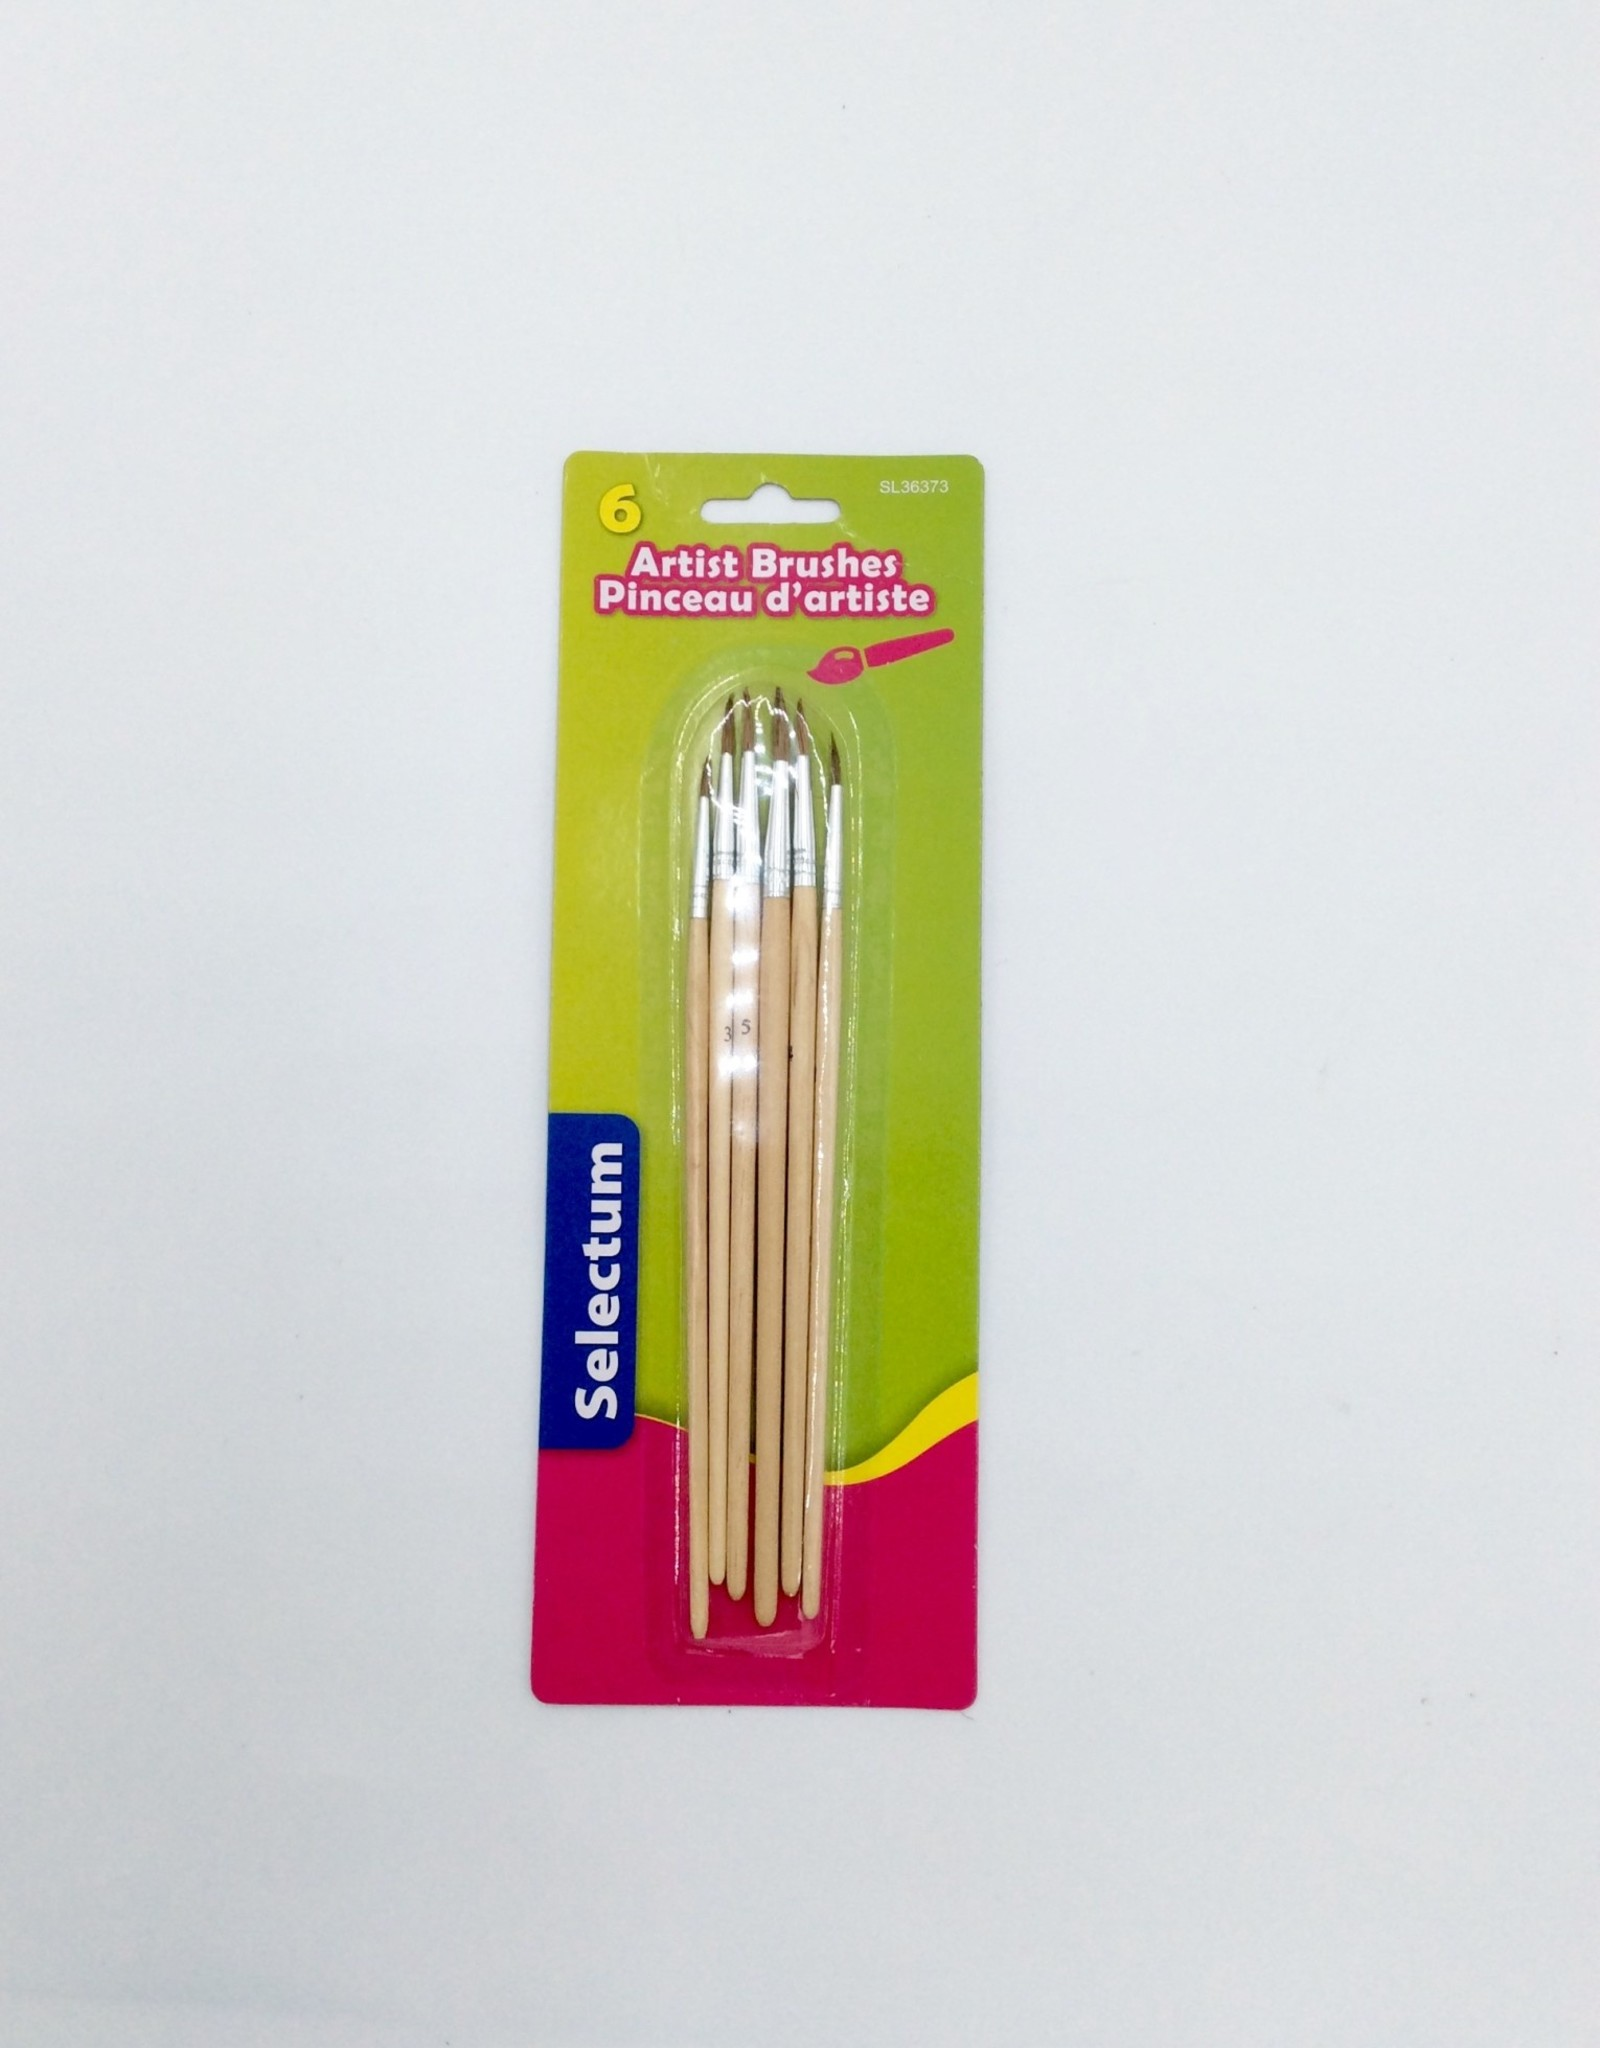 Selectum 6 Art.Brushes Round Point Natural Wood Handle